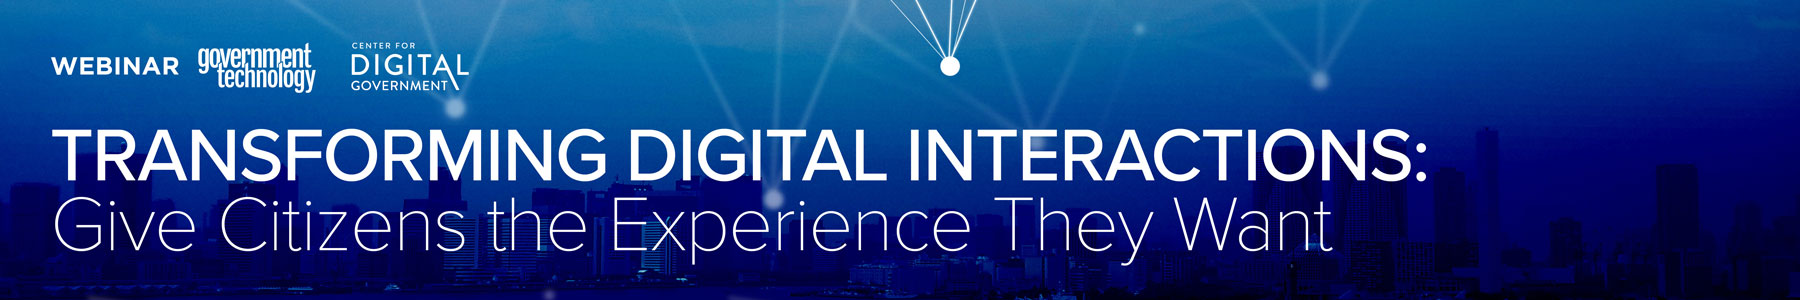 Transforming Digital Interactions: Give Citizens the Experience They Want